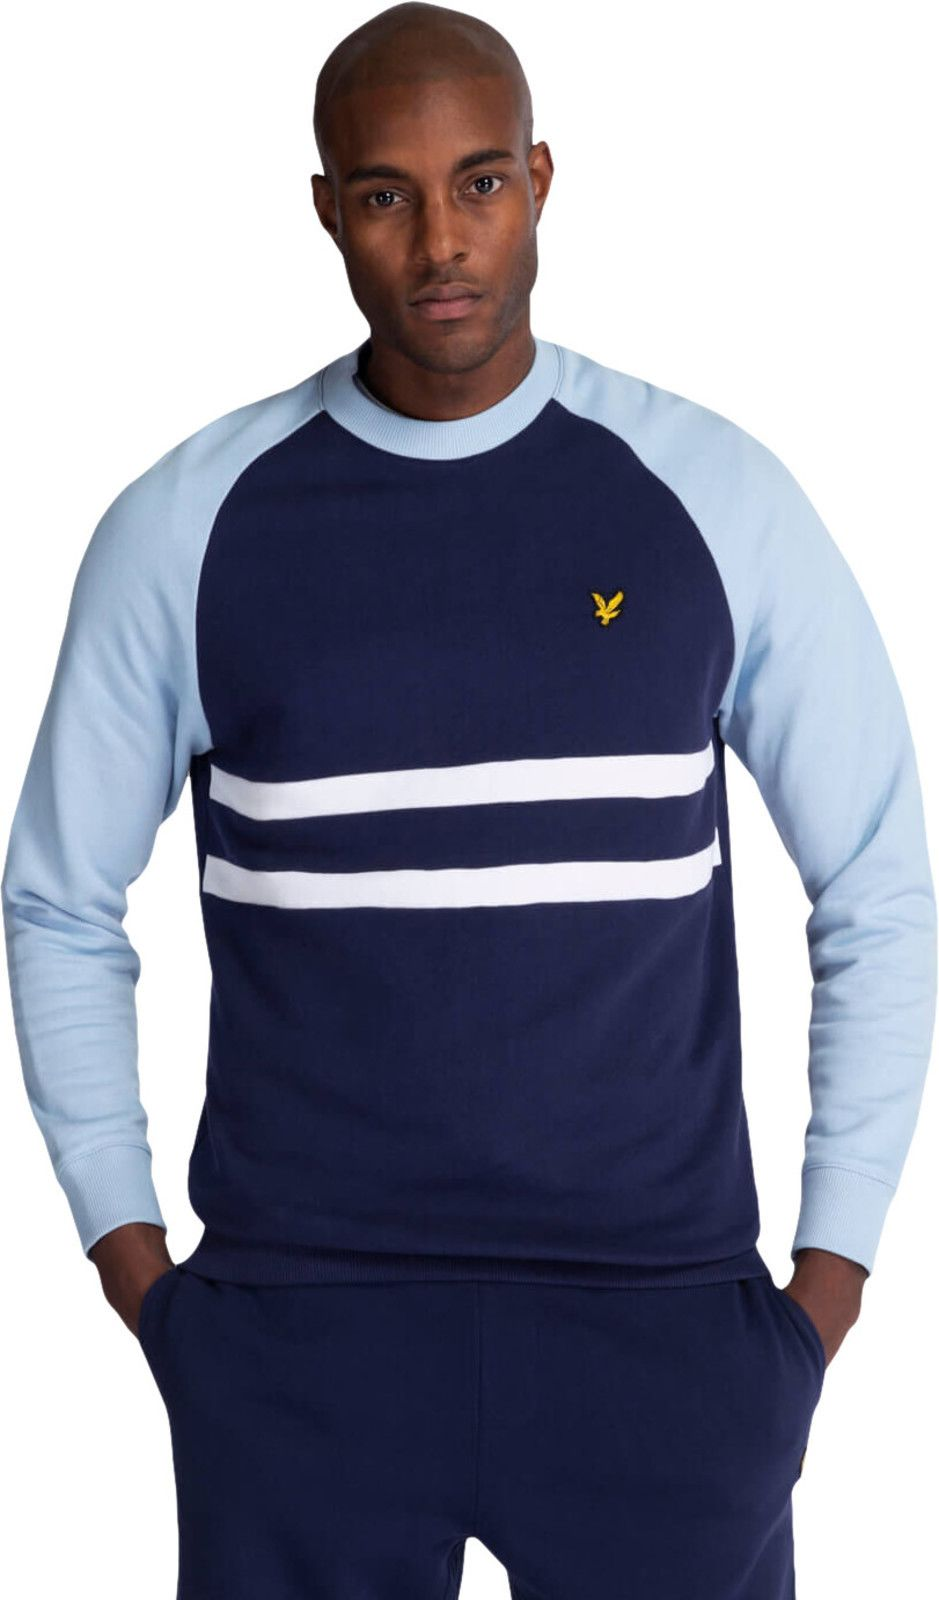 Lyle & Scott Raglan Sweatshirt Navy